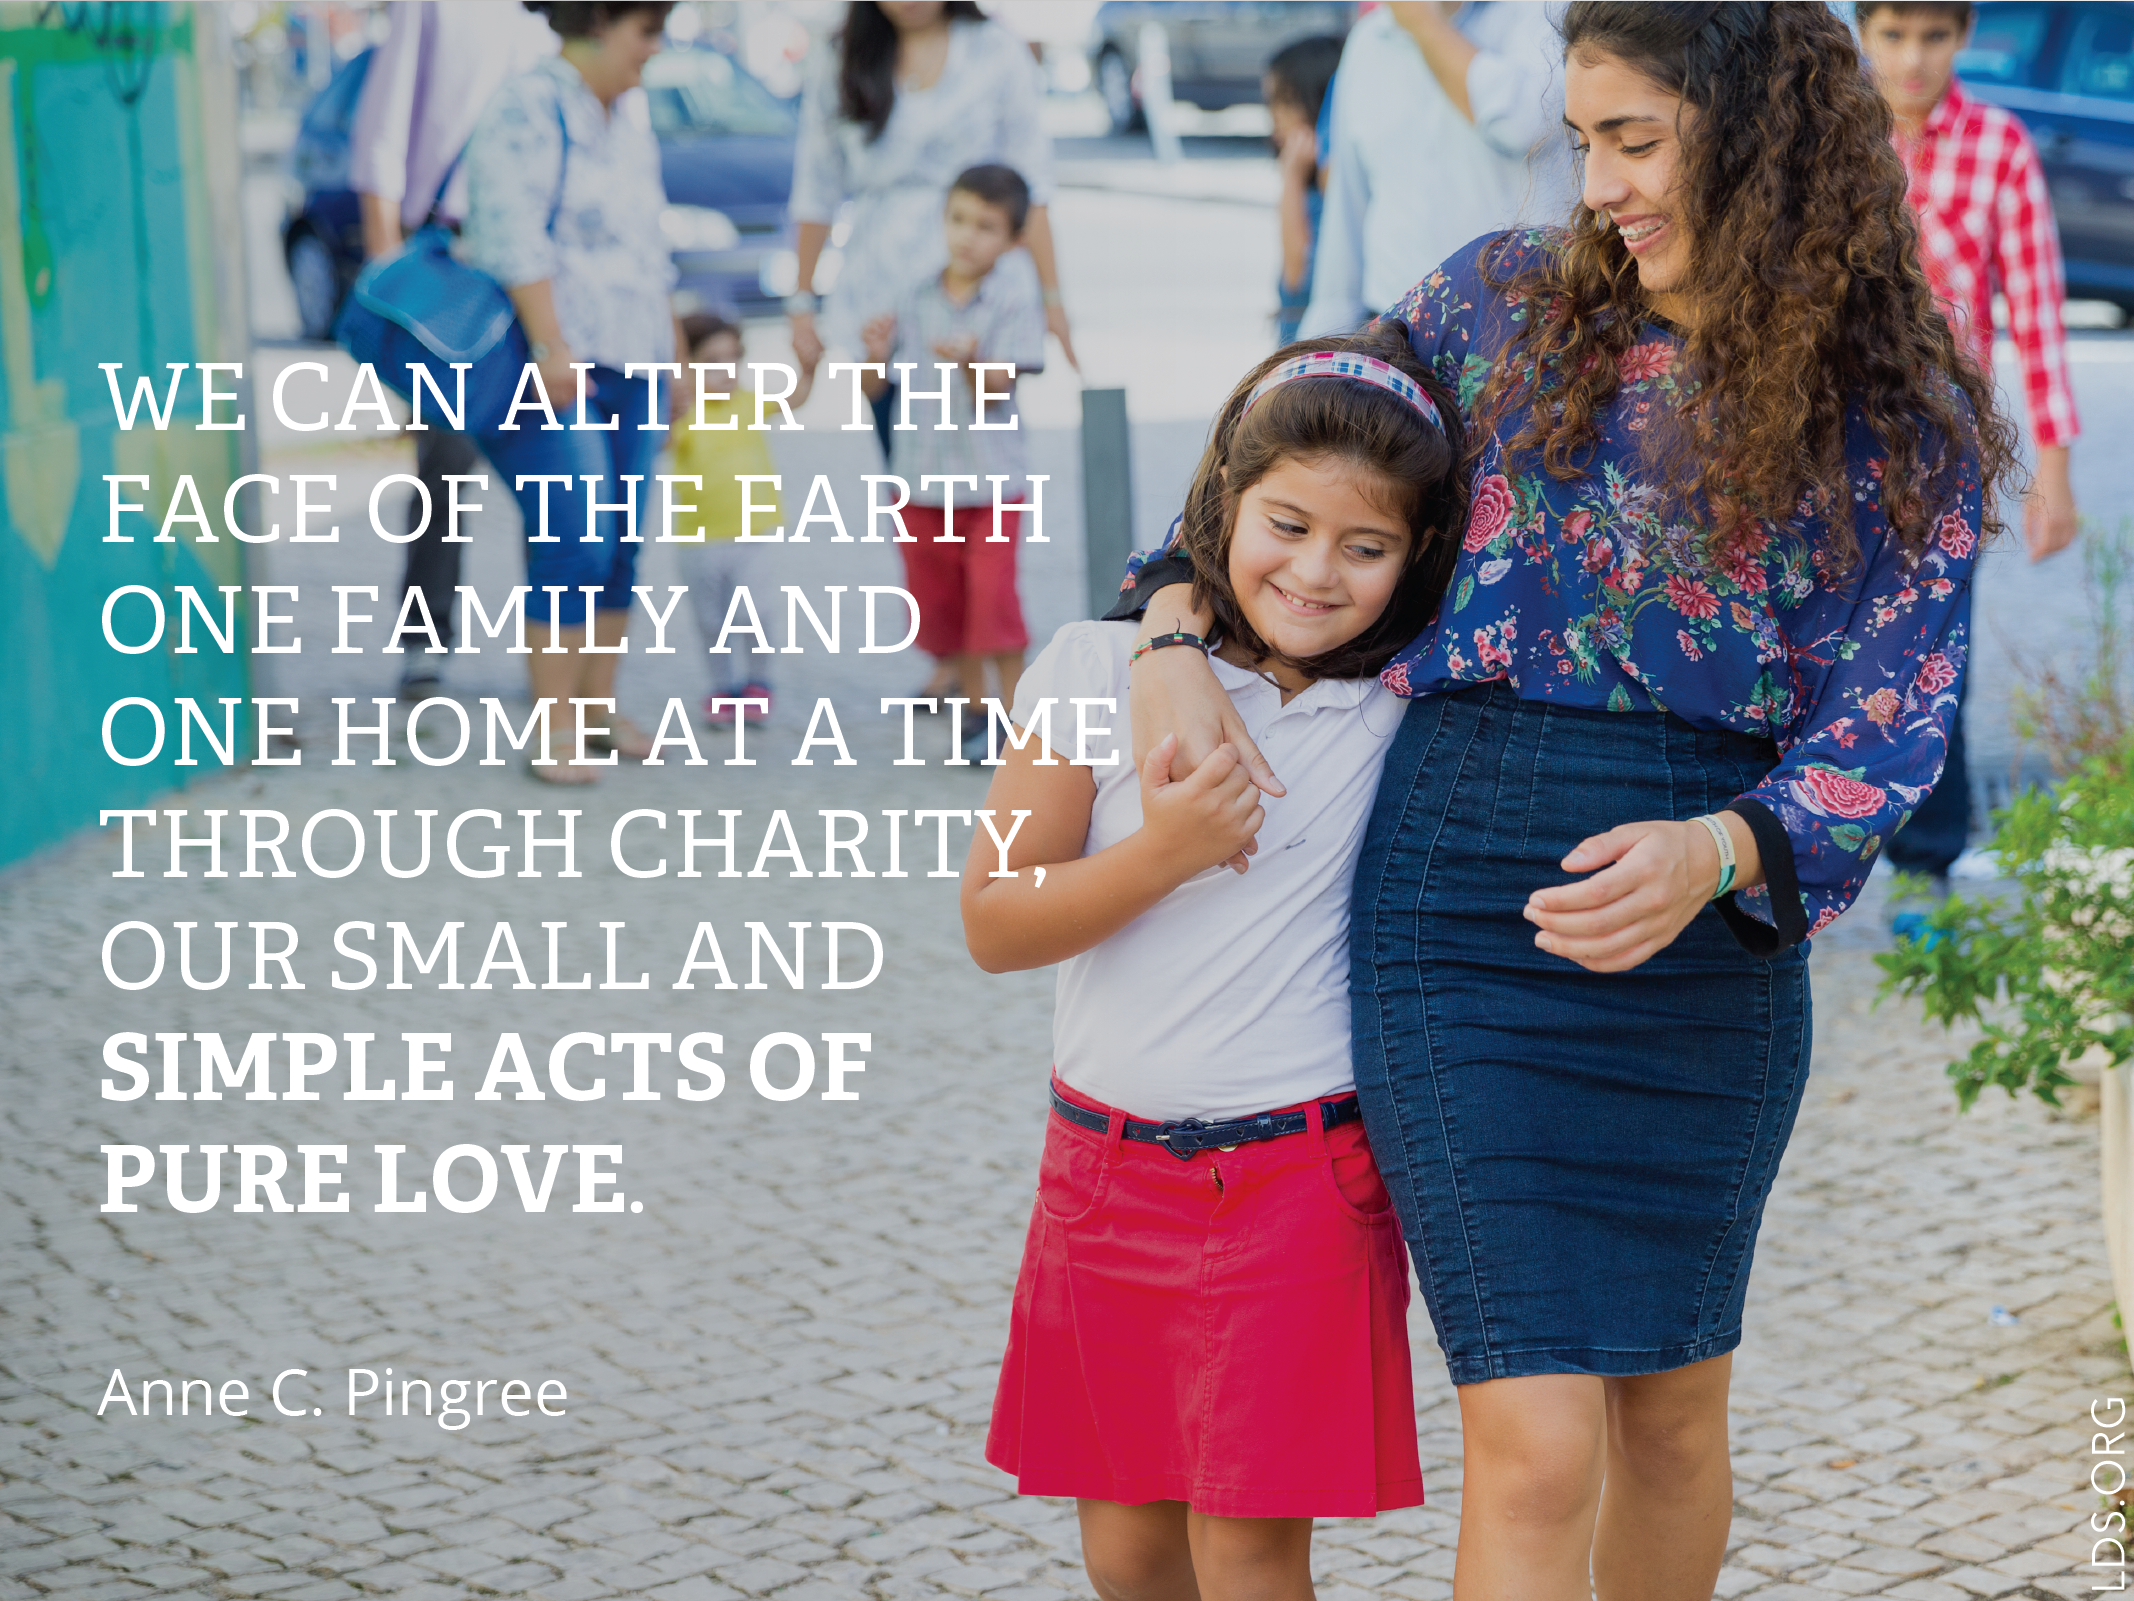 """Meme with a quote by Anne C. Pingree reading """"We can alter the face of the Earth one family and one home at a time through charity, our small and simple acts of pure love.""""  English language.  © See Individual Images ipCode 1."""